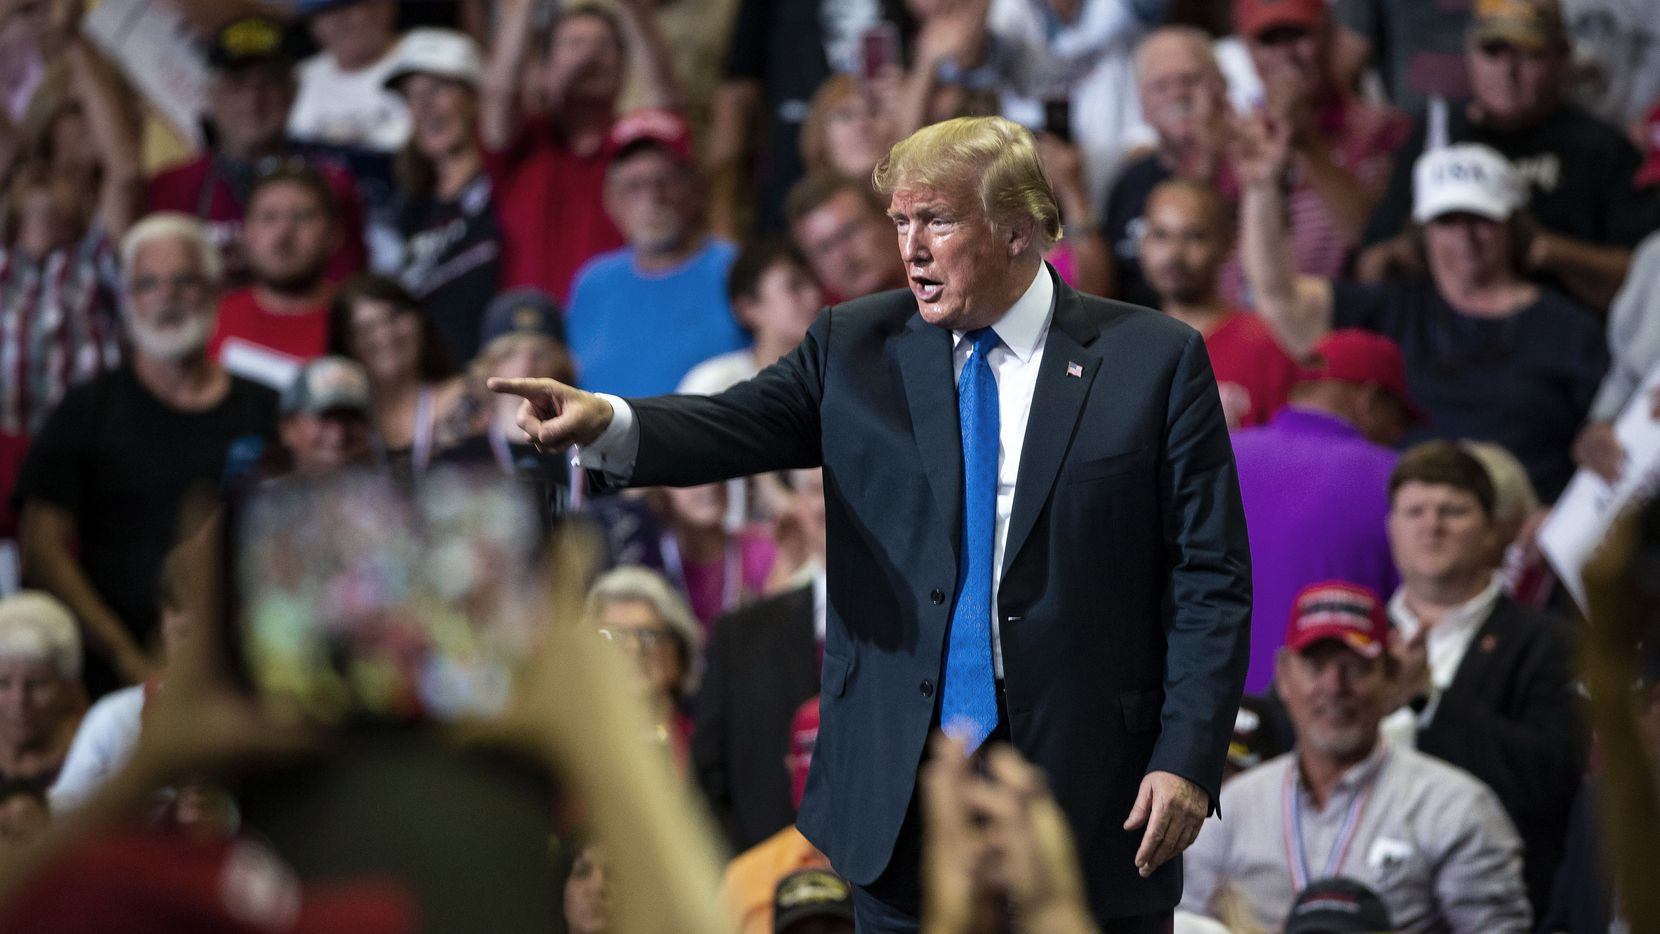 President Donald Trump was cheered at a rally Tuesday in Southaven, Miss.